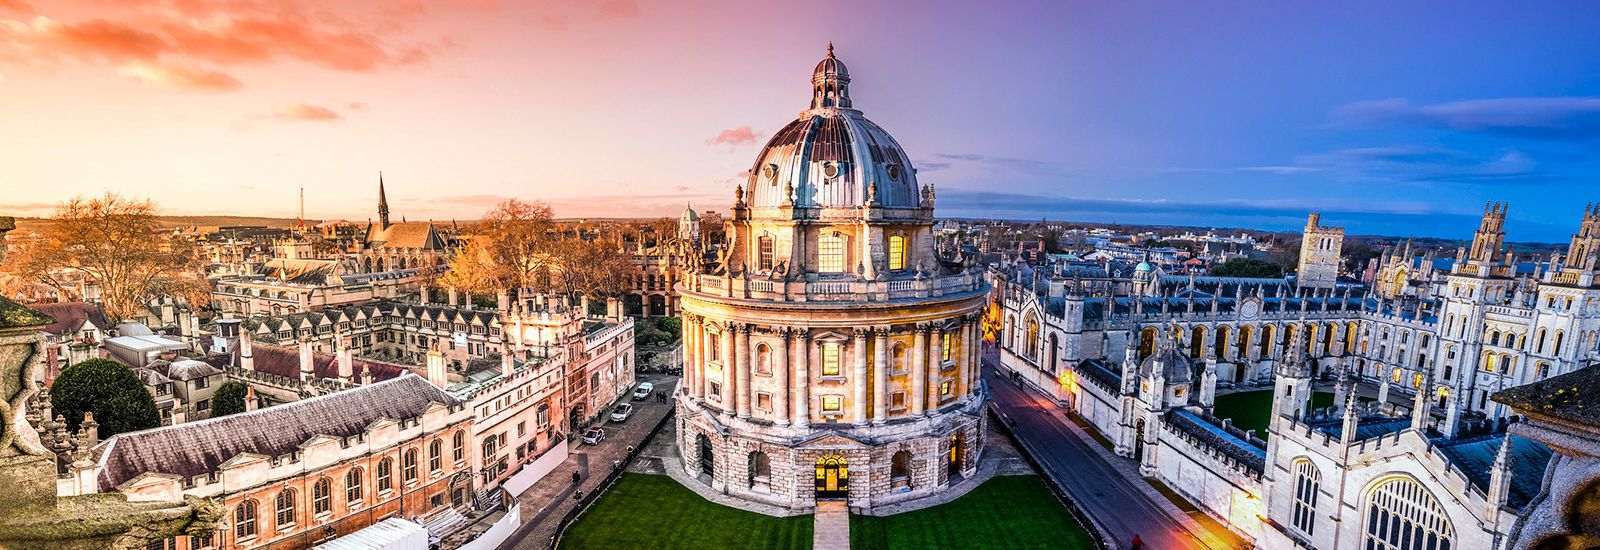 /news/2018/oxford-skyline.jpg